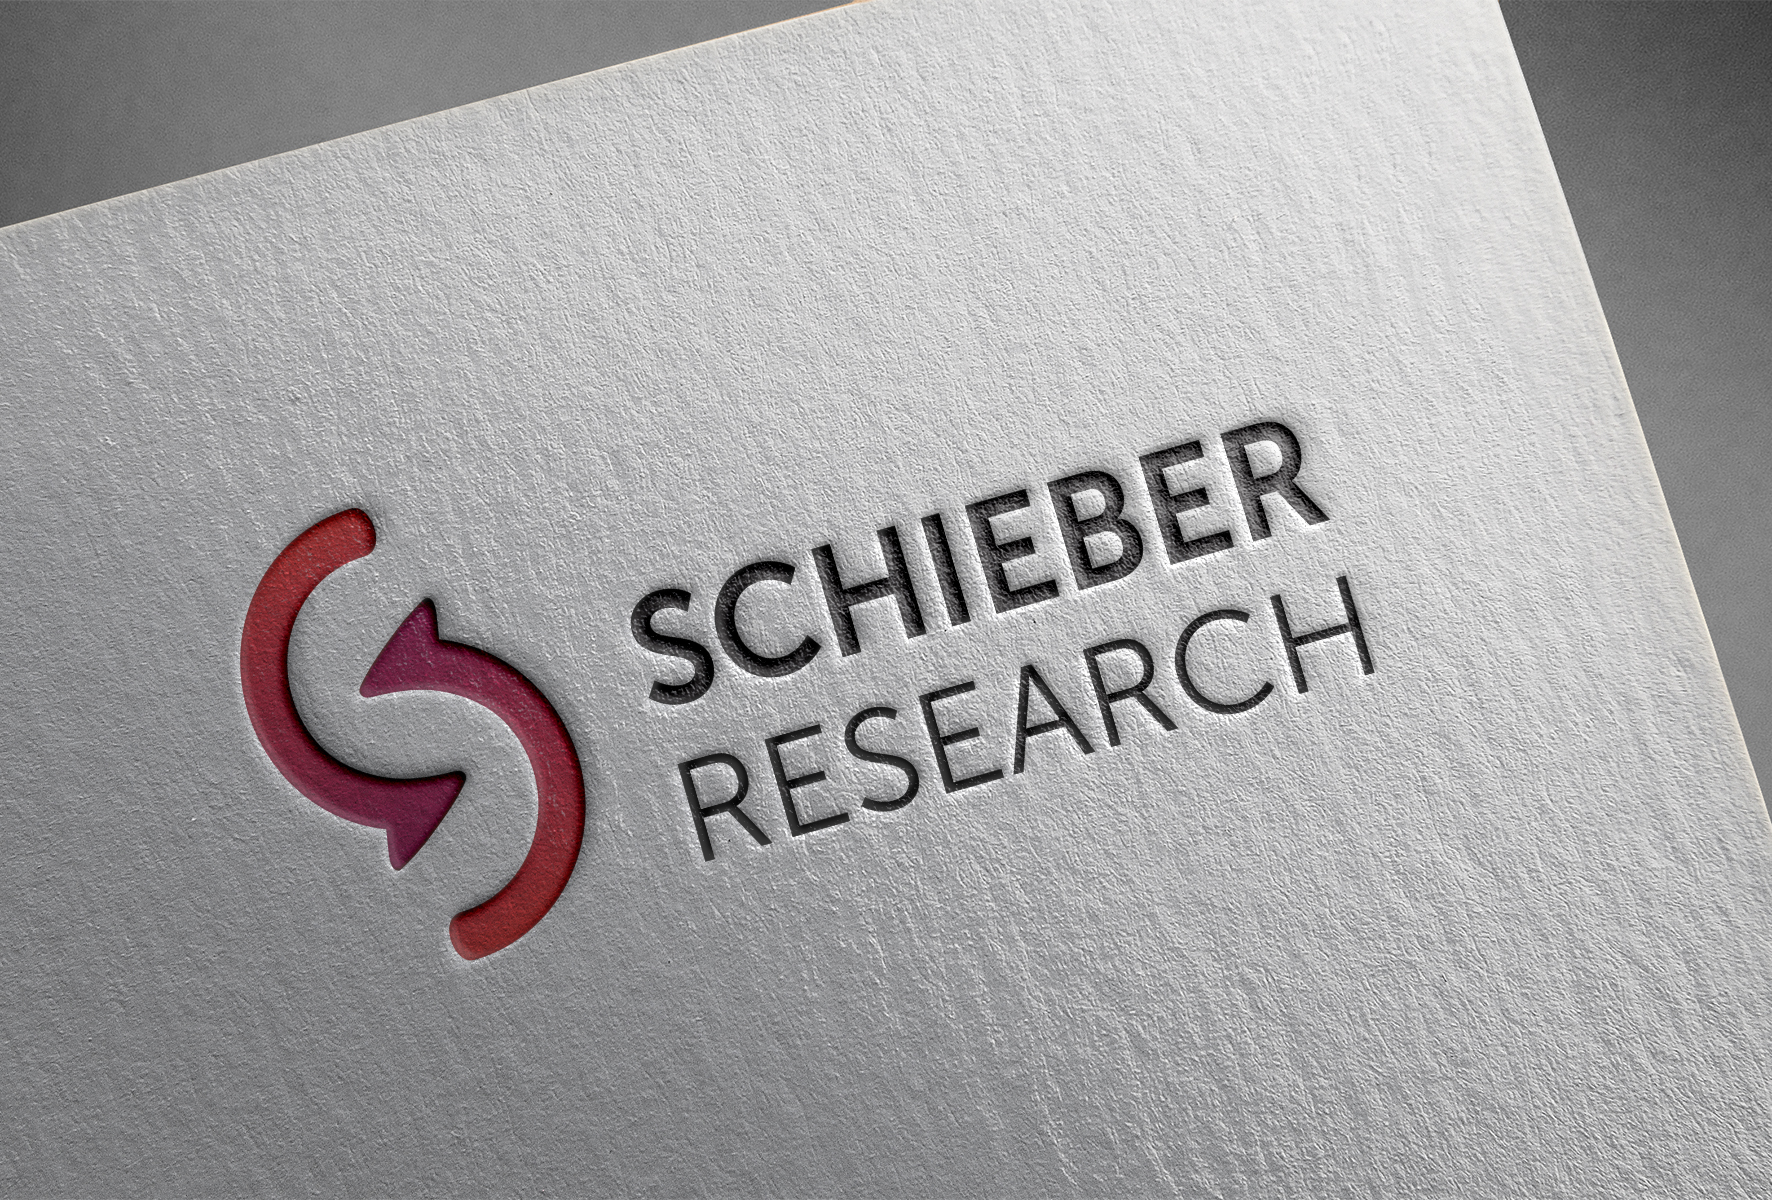 Schiber Research